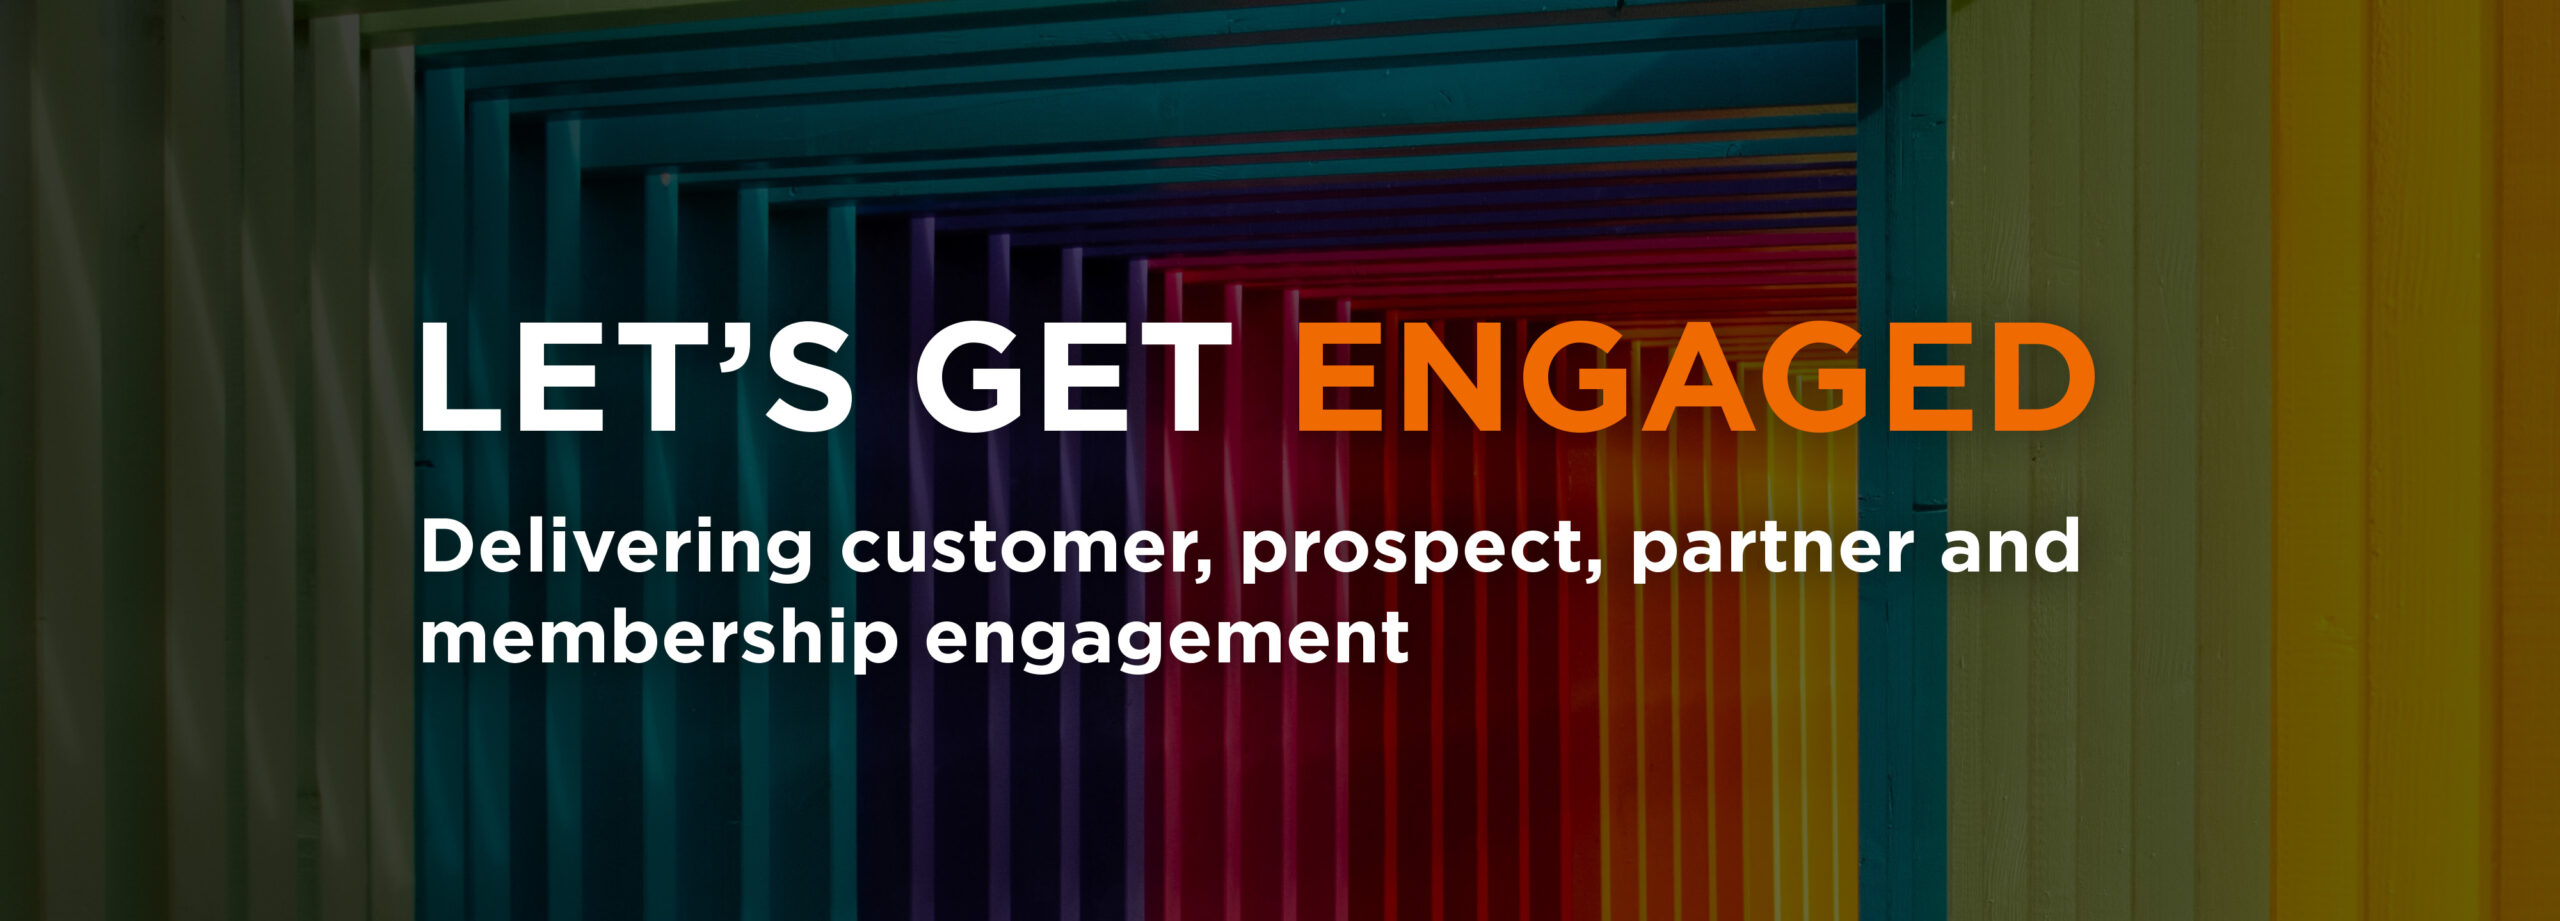 Outsourced Engagement: Let's Get Engaged